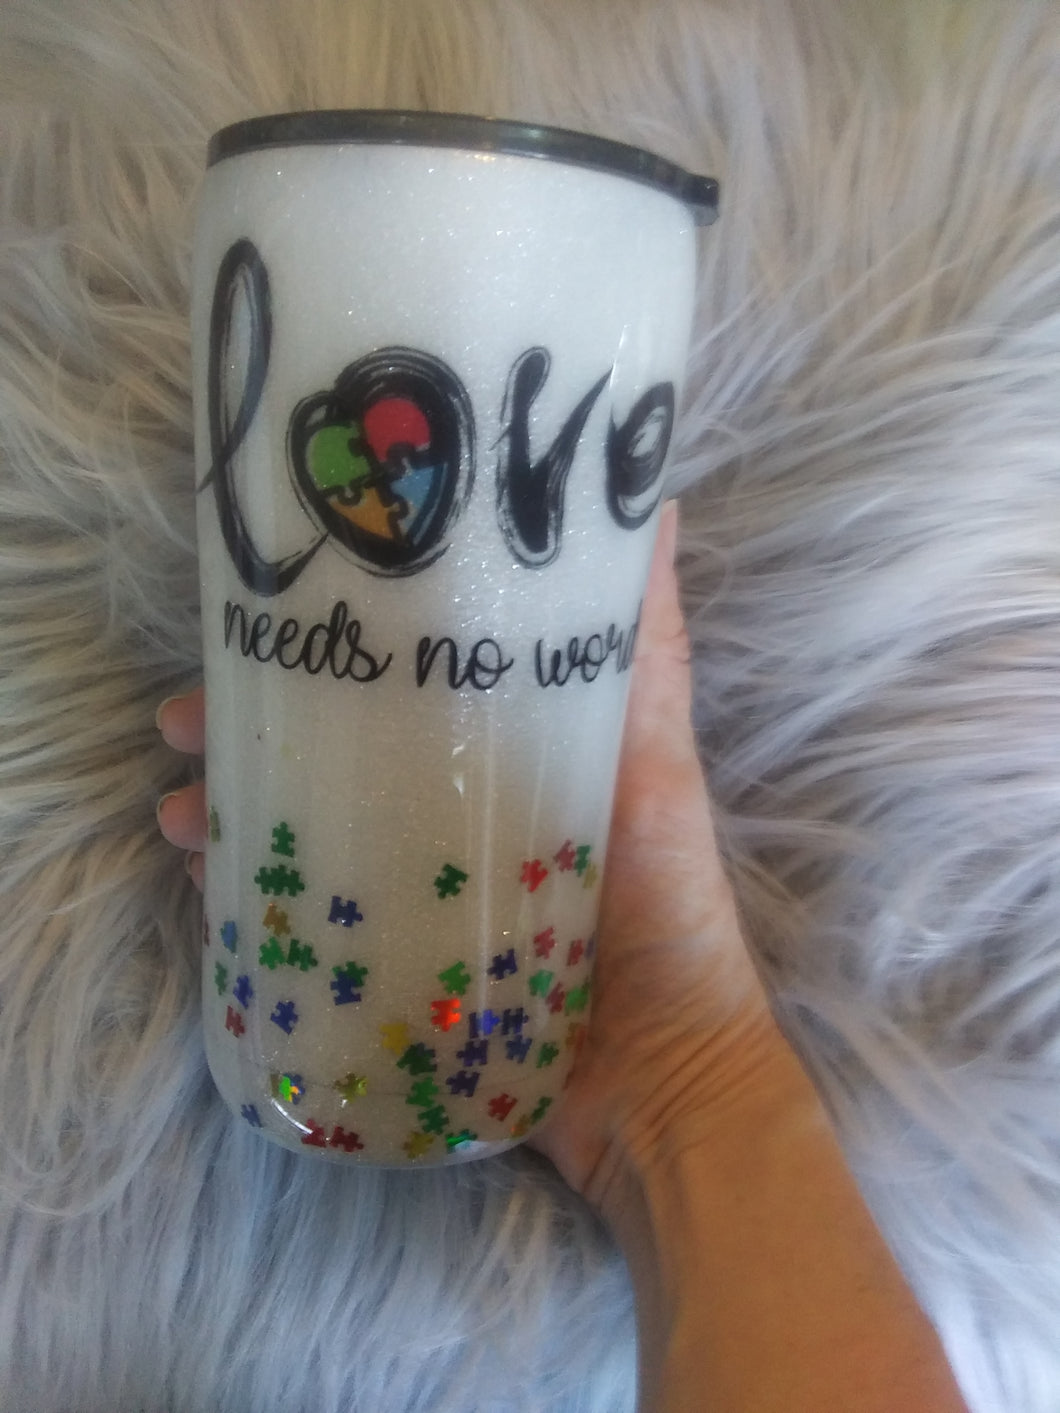 Love needs no words tumbler